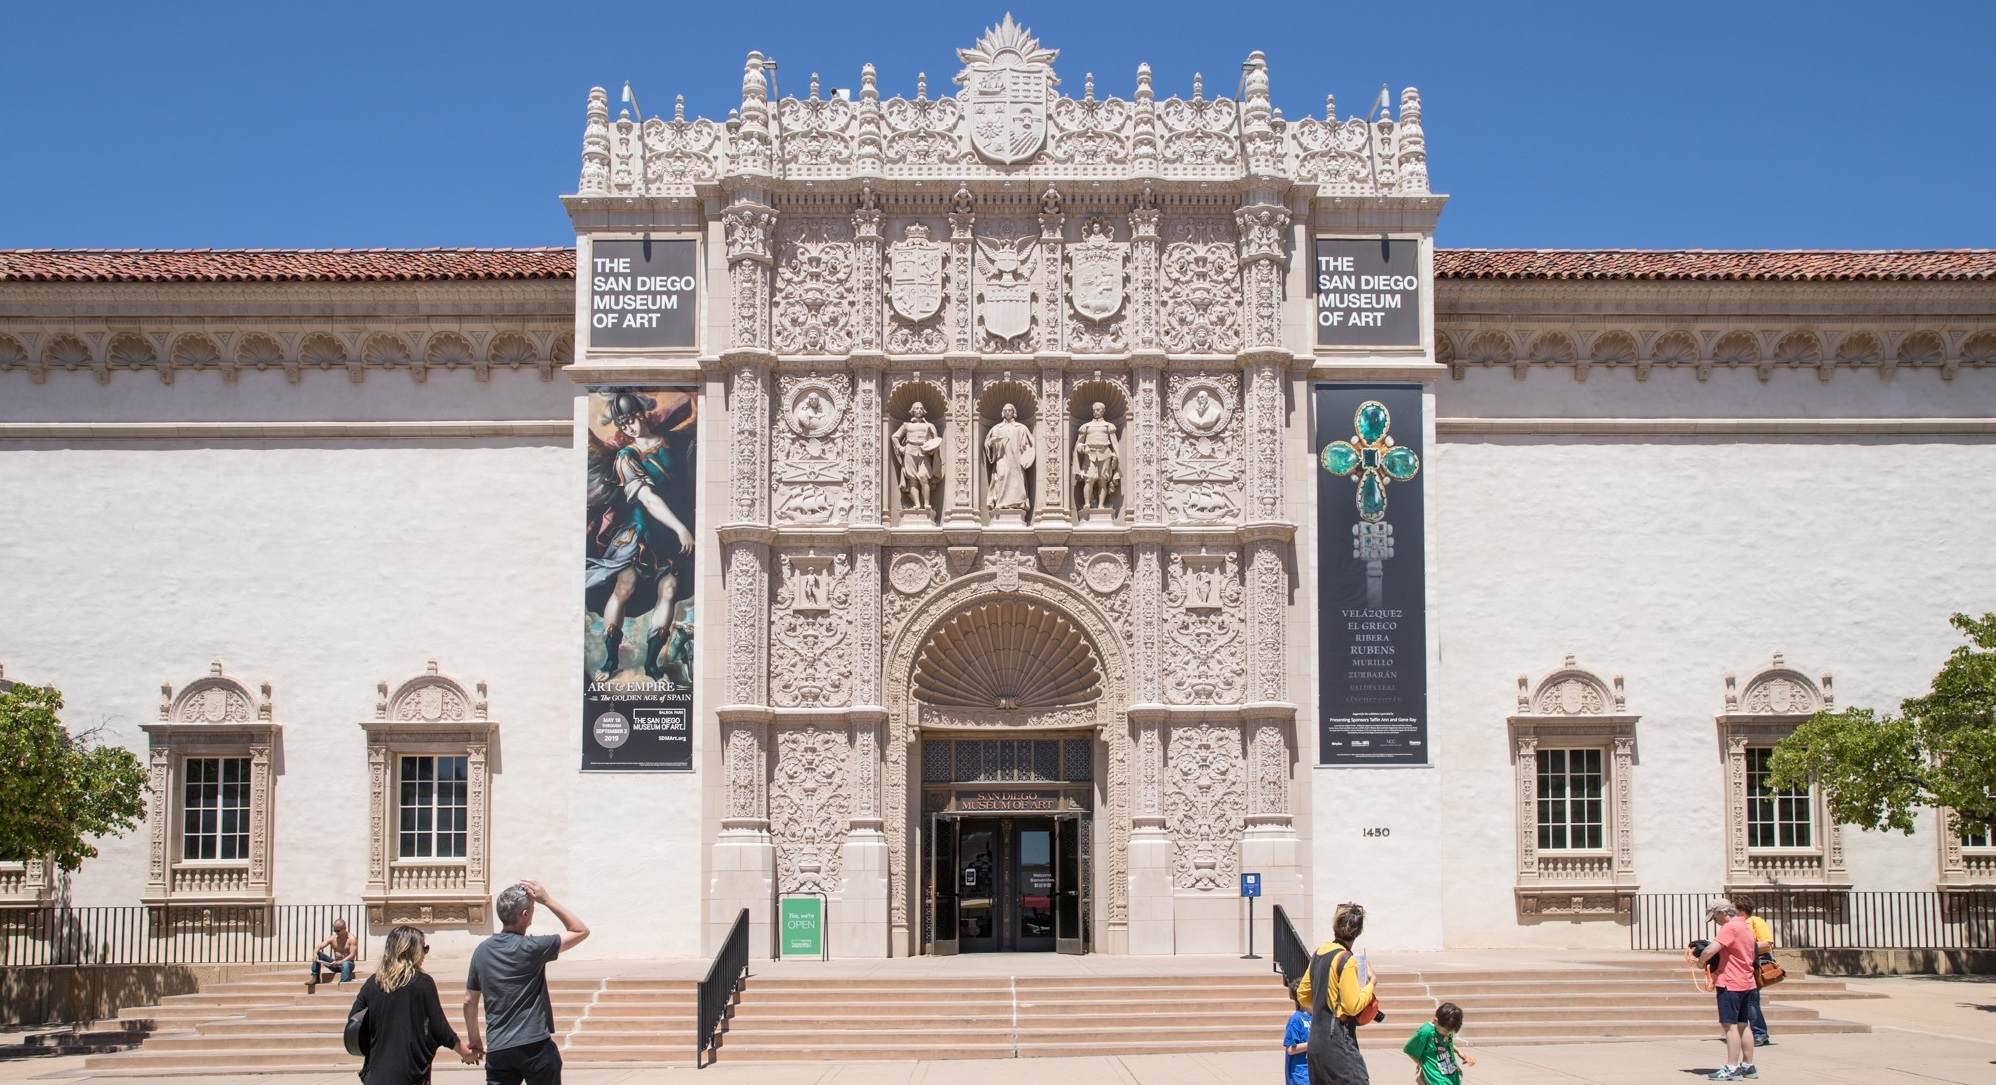 Front entrance of the San Diego Museum of Art